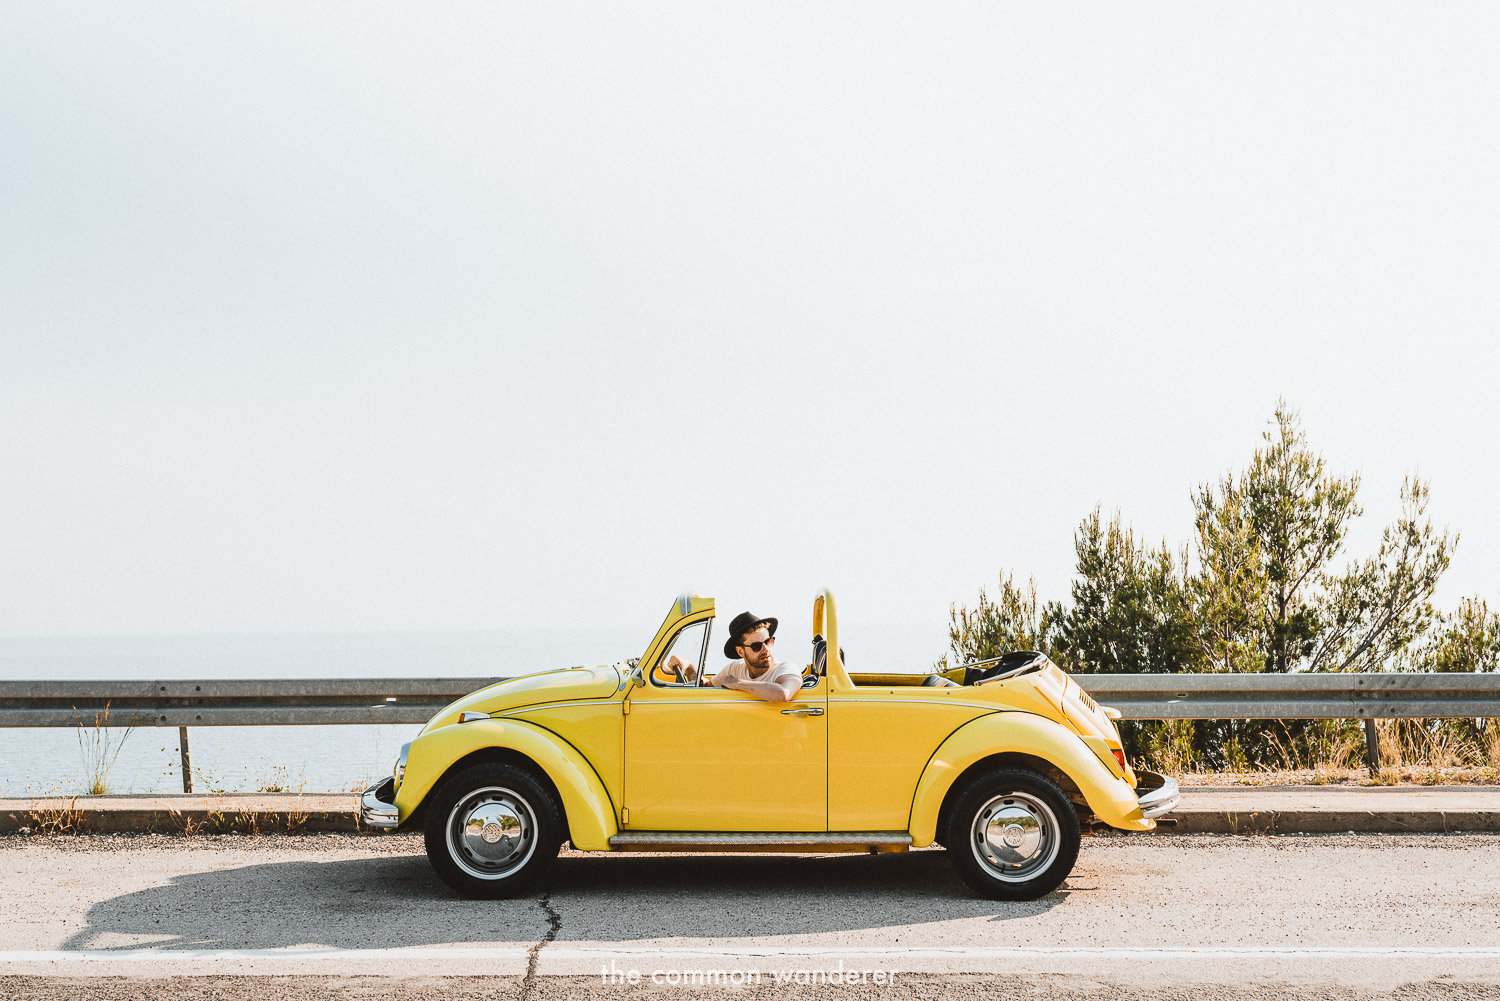 Exploring Hvar island in a Volkswagen beetle - best things to do in Hvar town